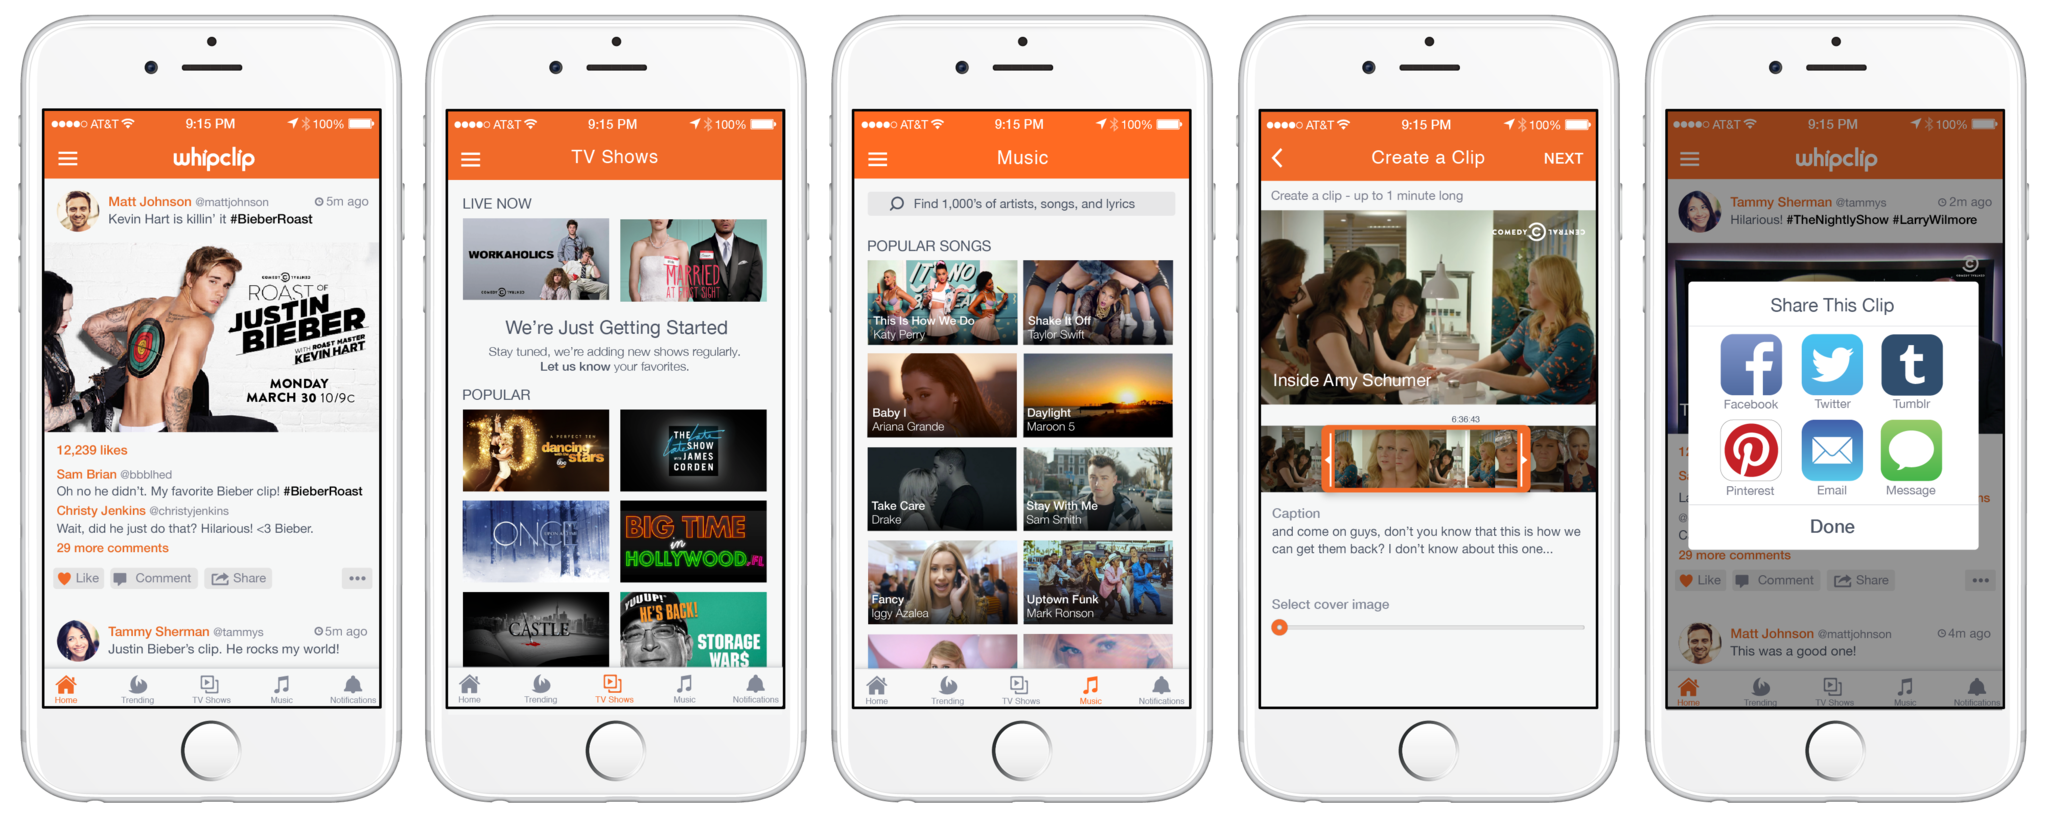 With Whipclip, TV viewers can create and share clips of favorite moments